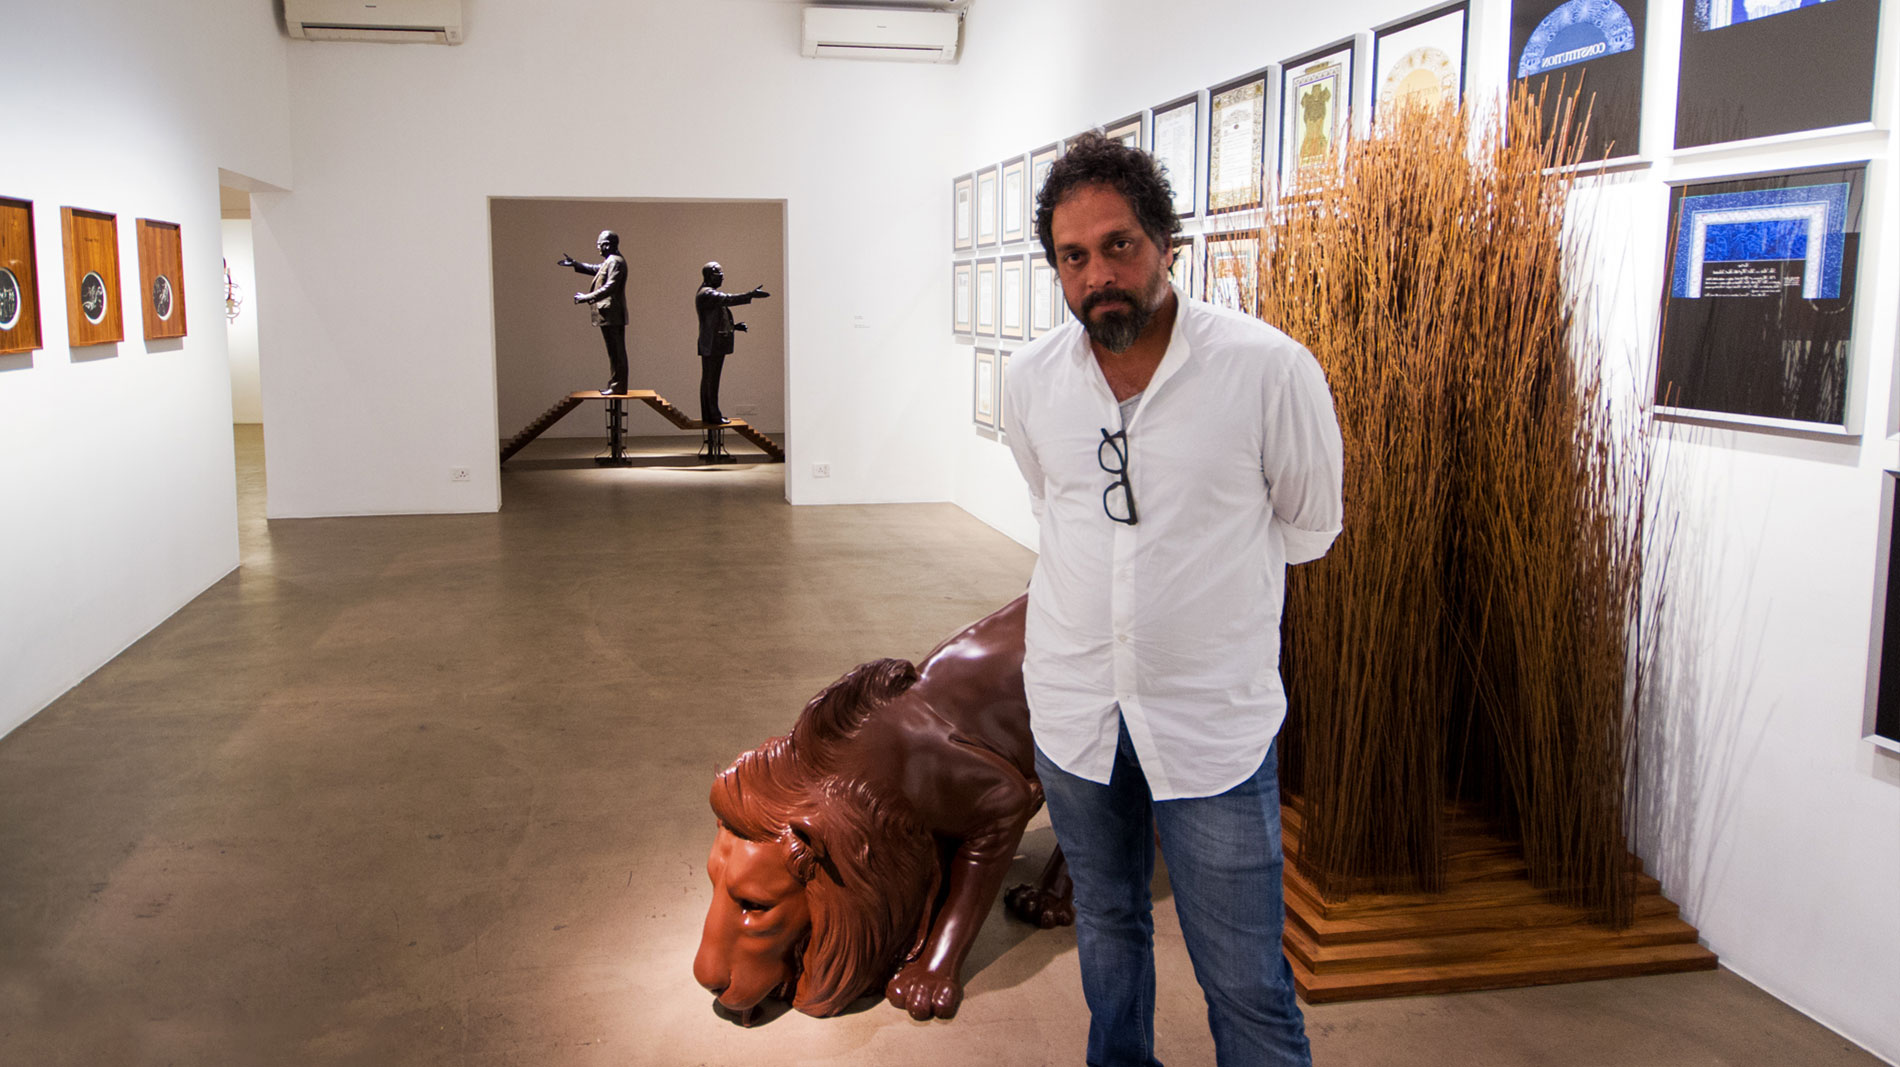 The Dissidence Doctrine He has been at the forefront of art activism in the region. In the past decade, Riyas has been a key catalyst in increasing the socio-economic currency of arts in India in ways deemed impossible by market experts. Our team visited his solo show 'Holy Shiver' at Vadehra Art Gallery.